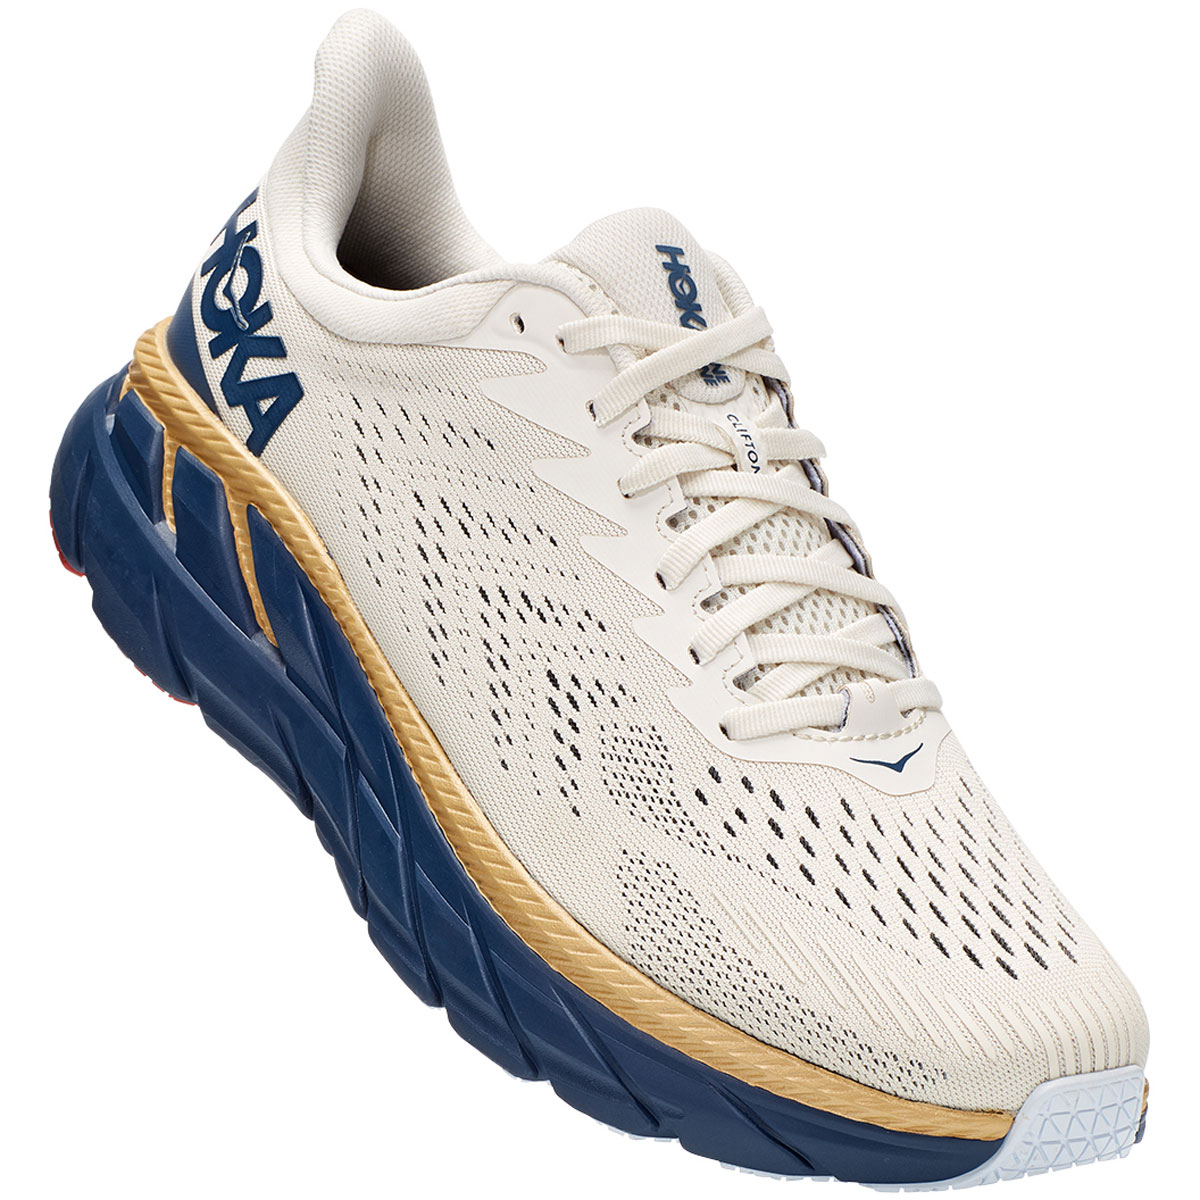 Men's Hoka One One Clifton 7 Running Shoe - Color: Tofu/Vintage - Size: 7 - Width: Regular, Tofu/Vintage, large, image 4